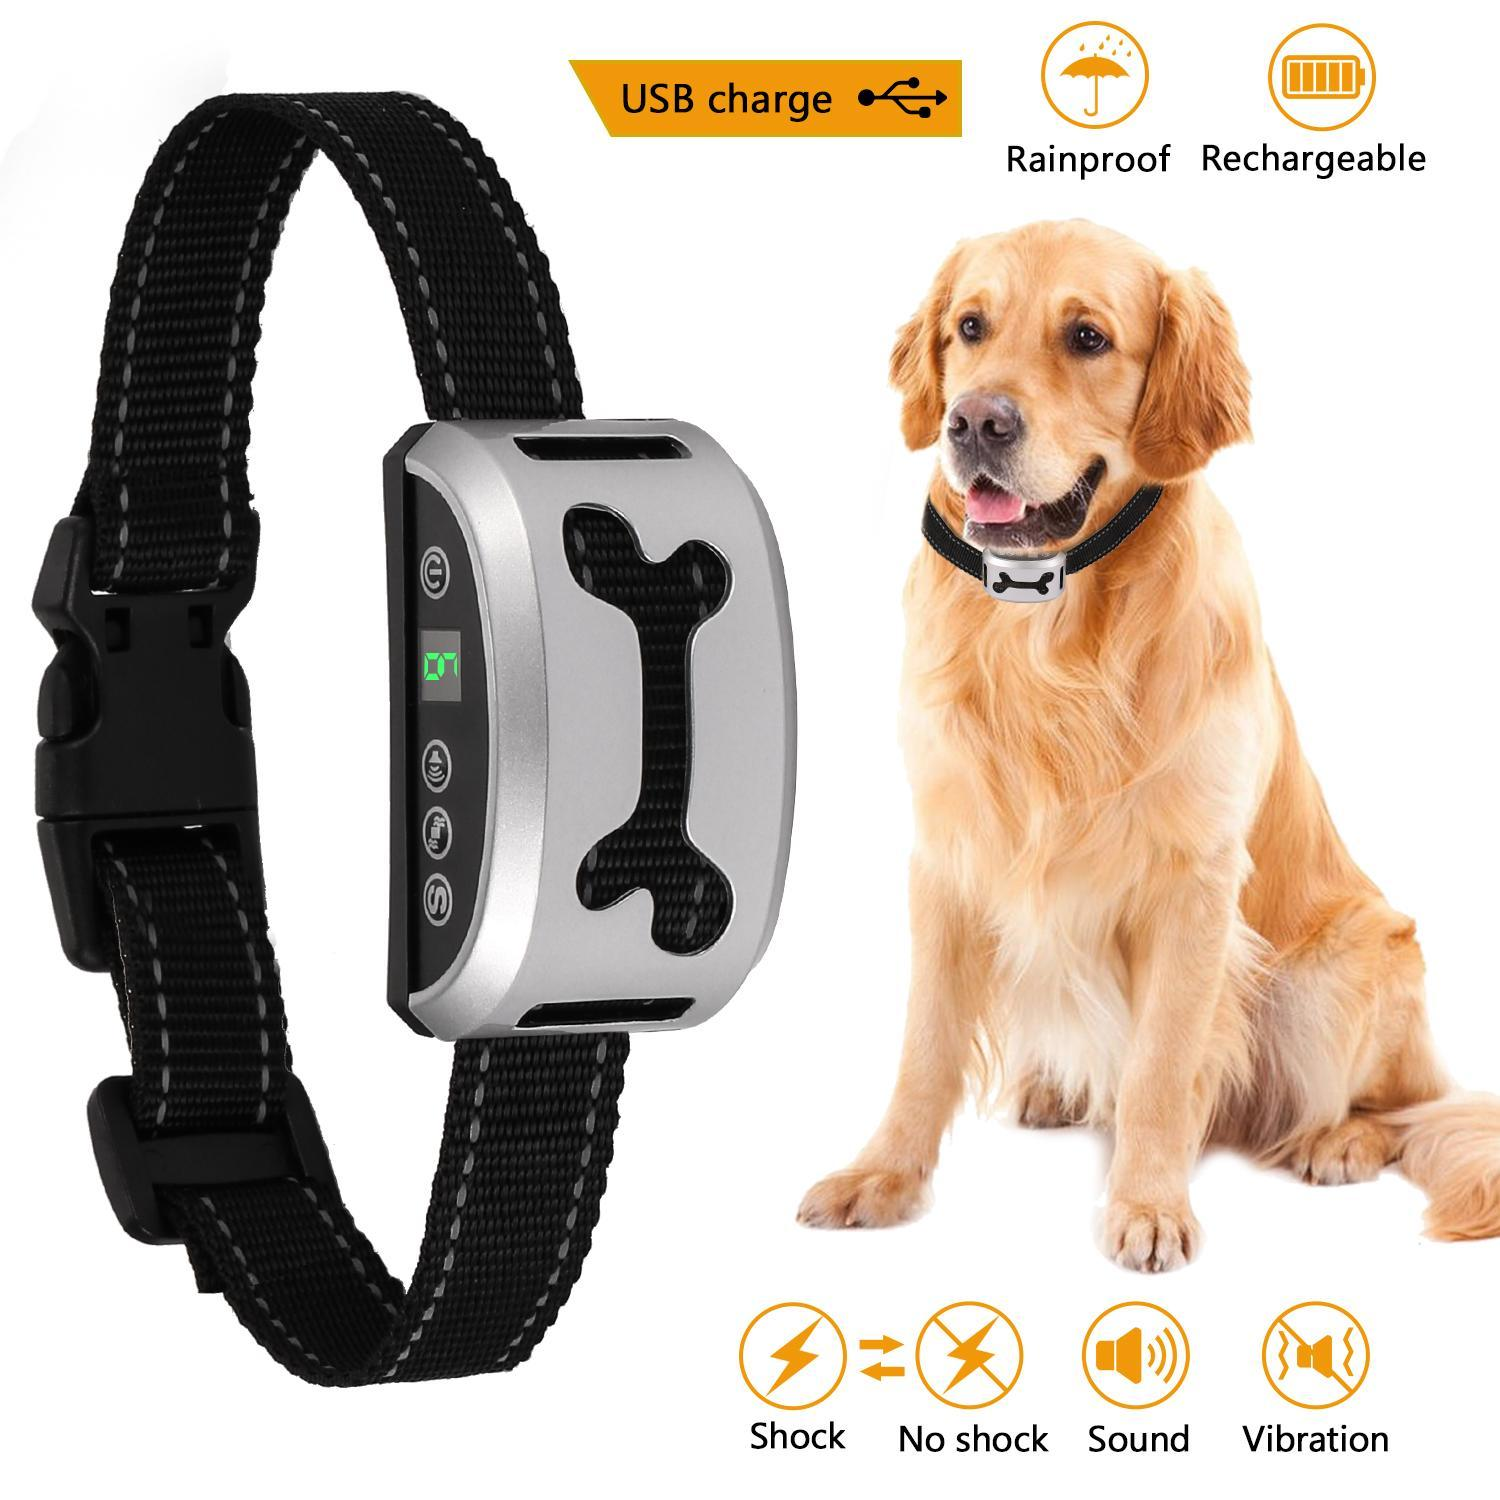 Hascon Vibration or Shock Barking Control Training Collar with 7 Adjustable Sensitivity Control for Dogs HITC